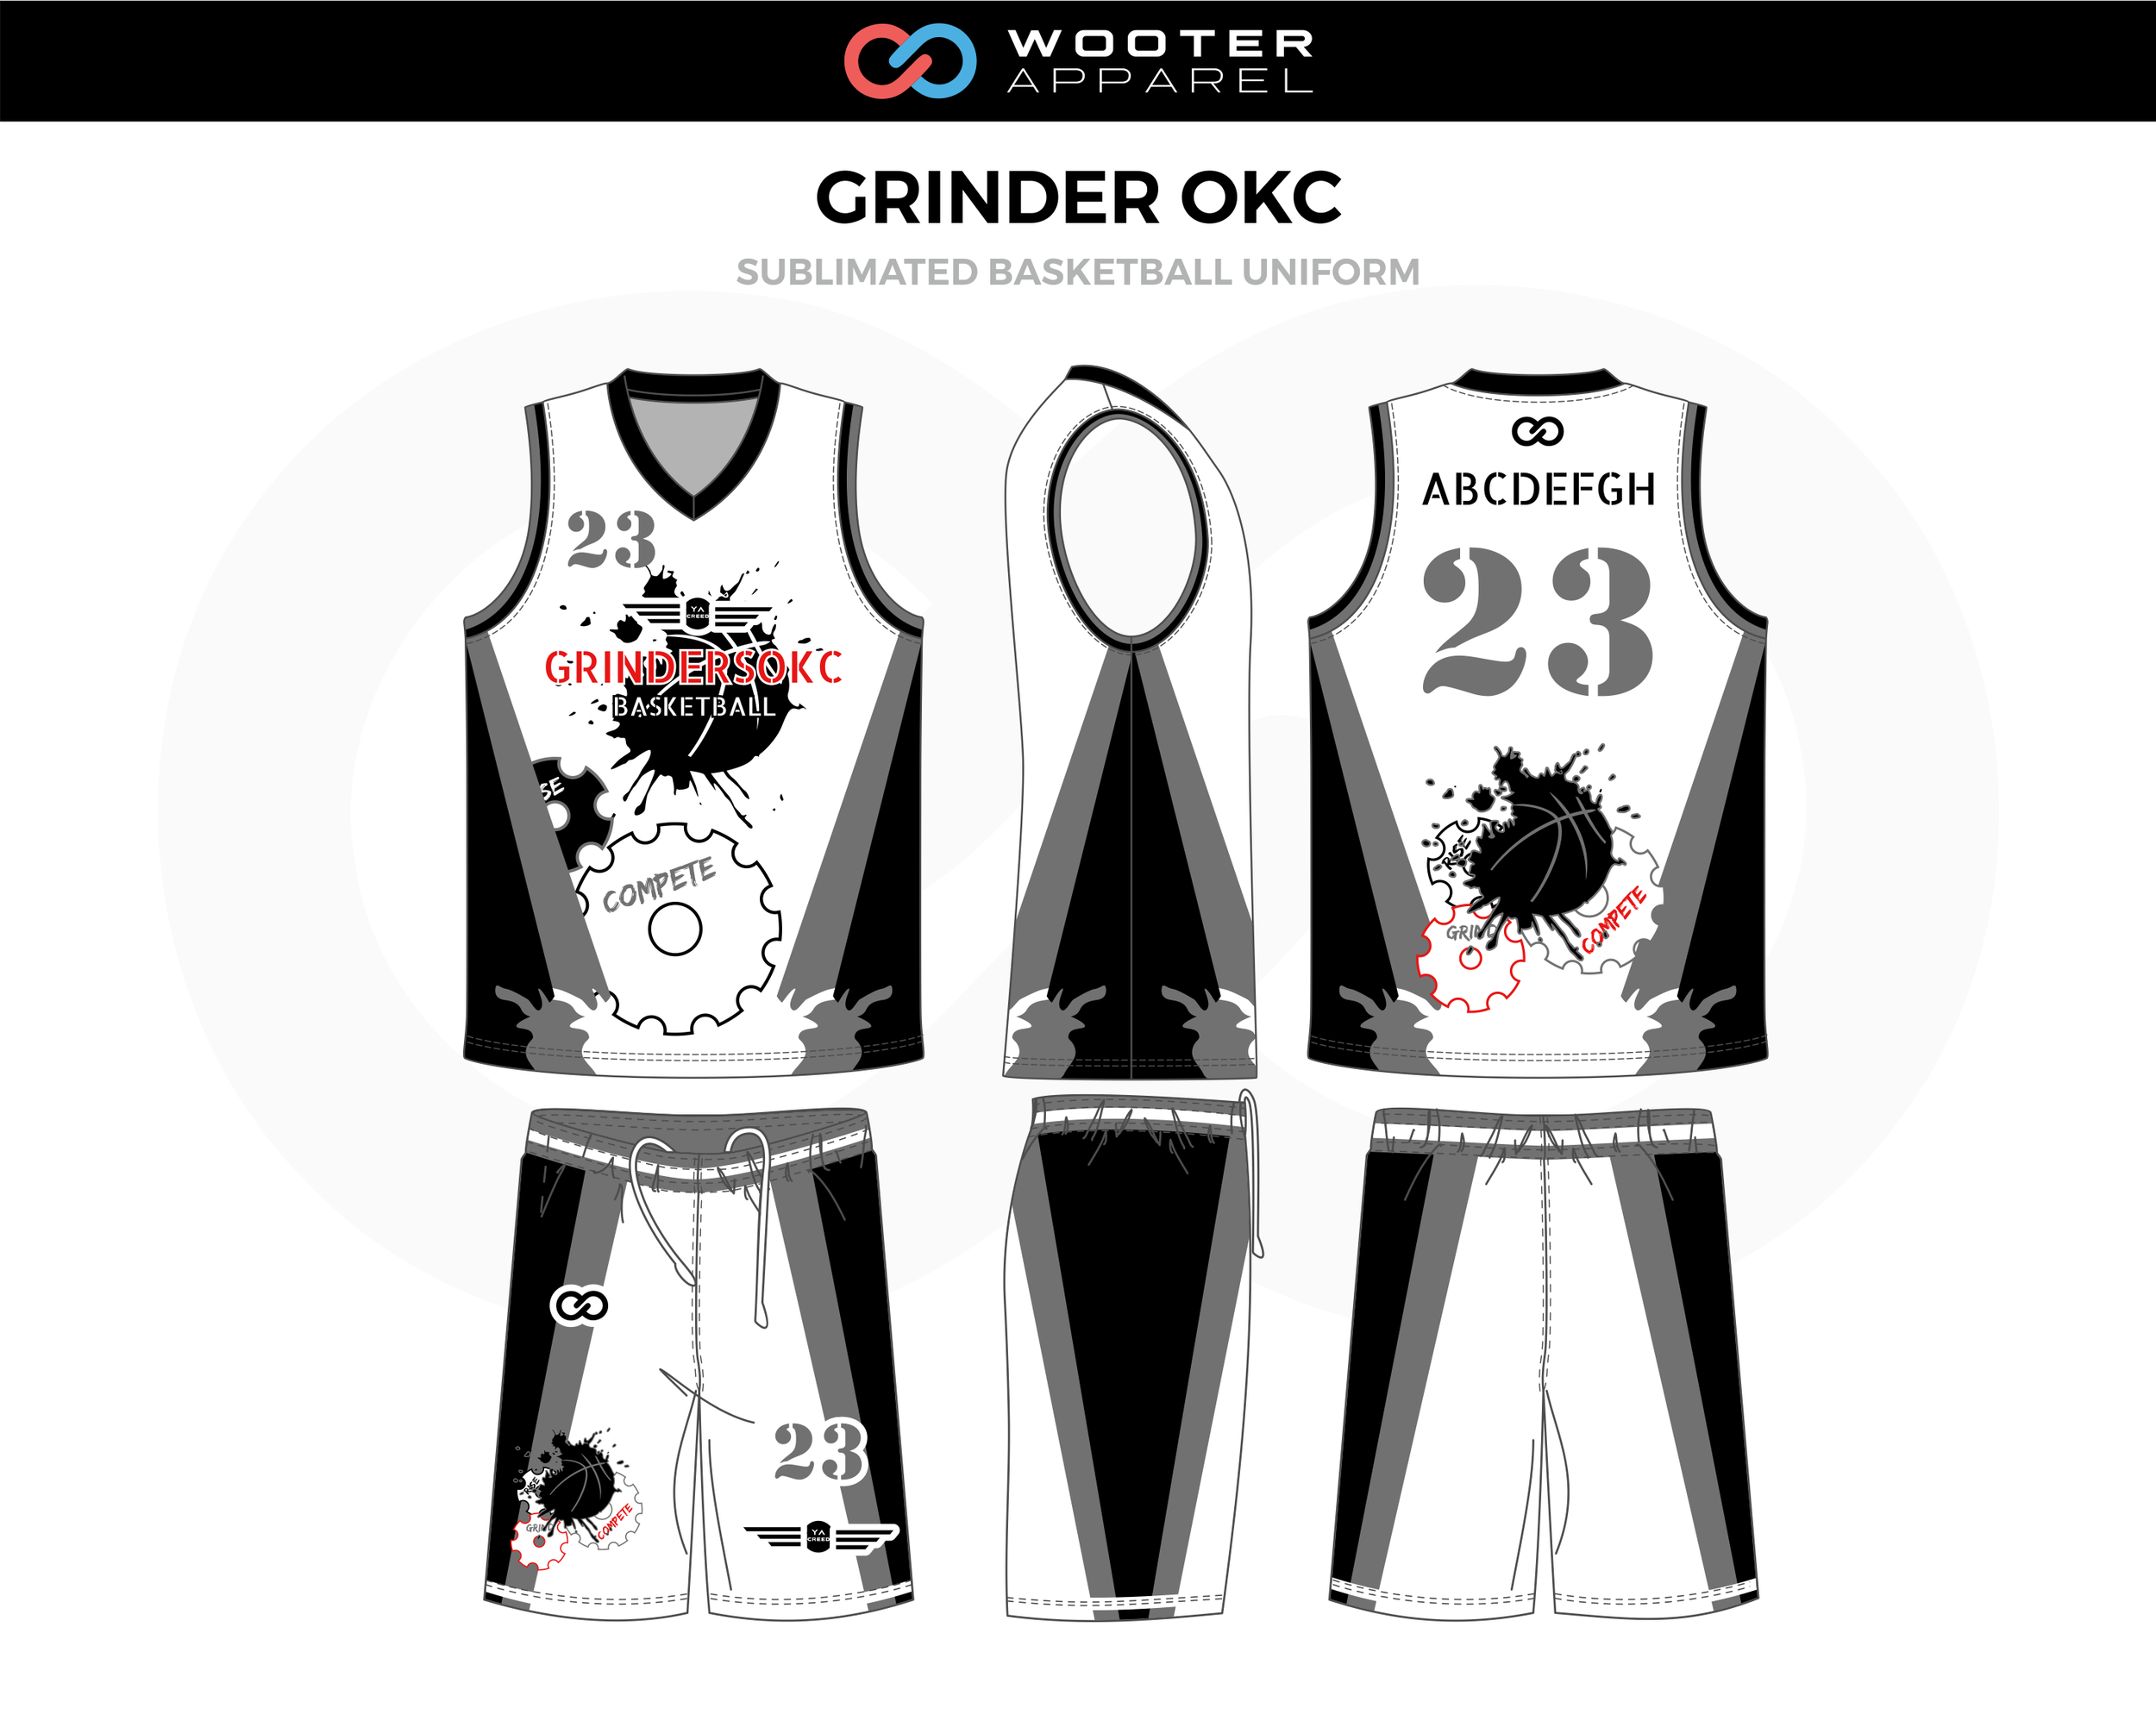 GRINDER OKC White Black Gray Basketball Uniform, Jersey and Shorts